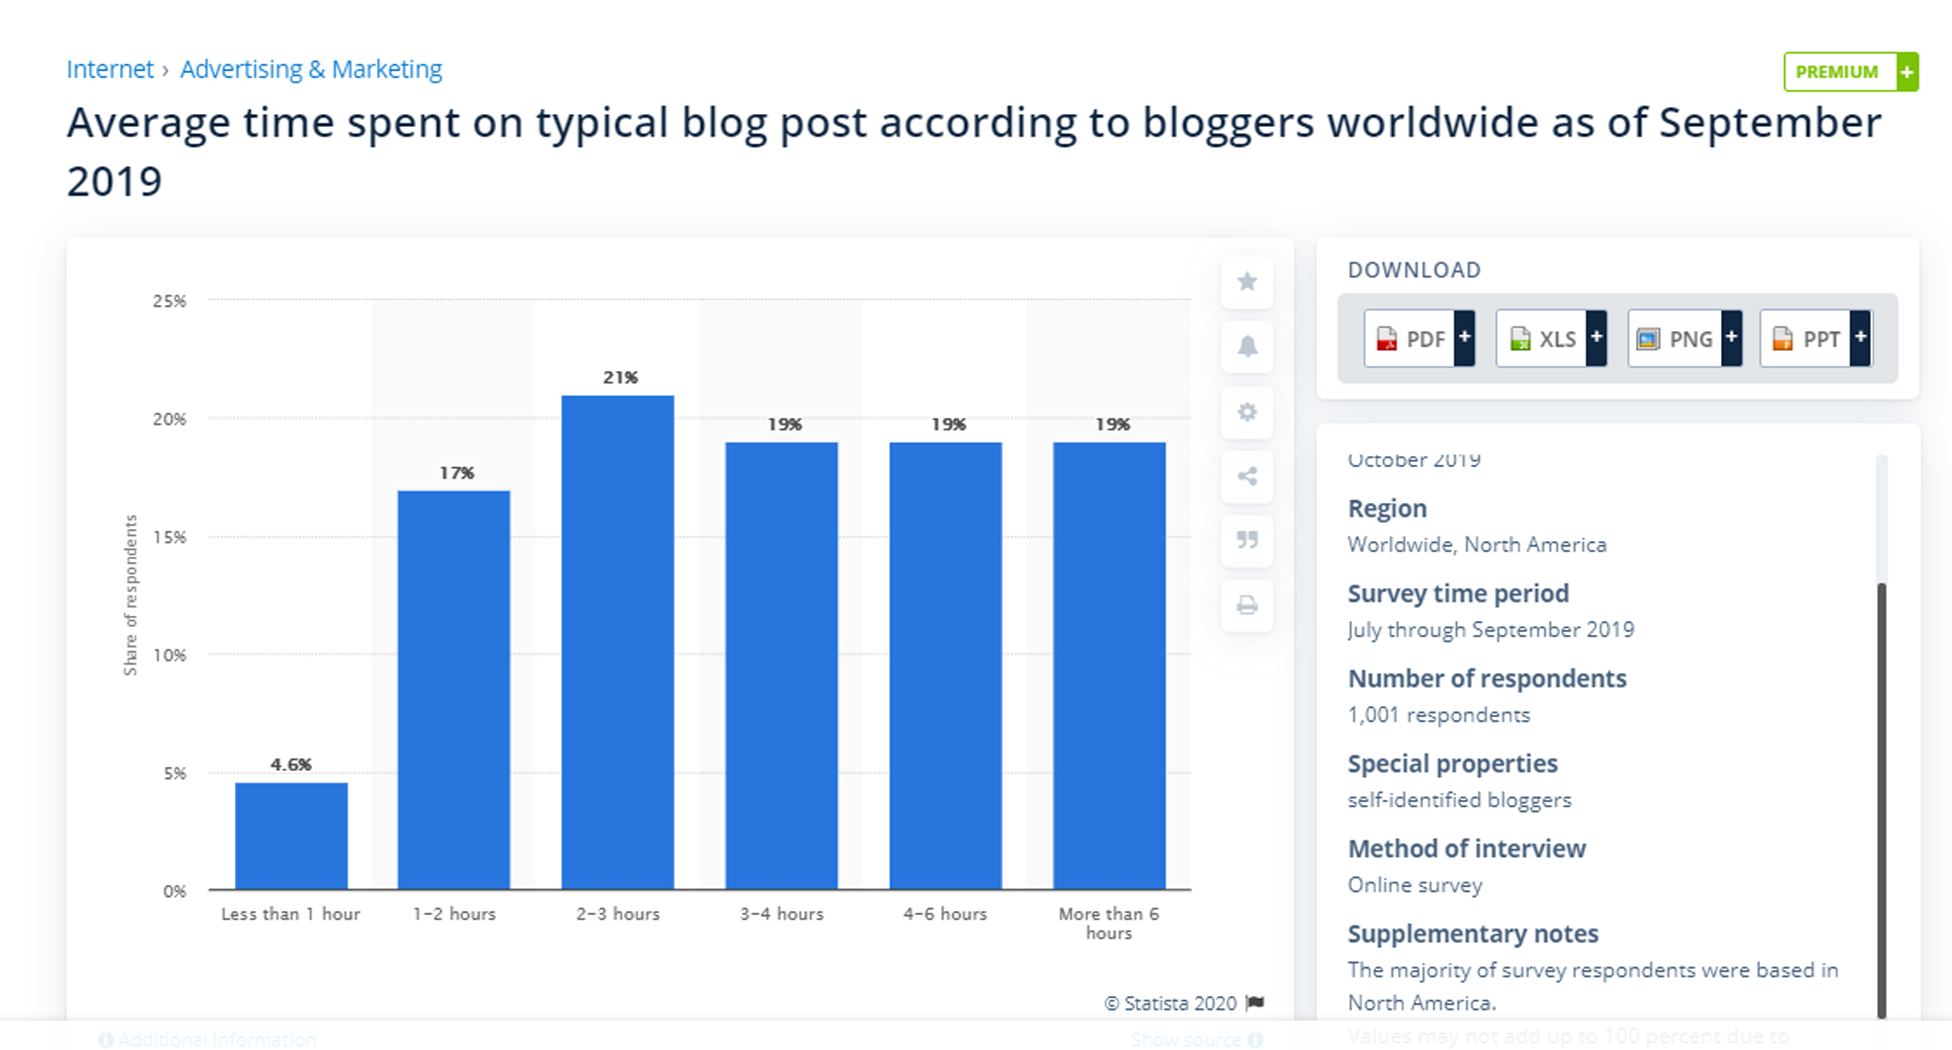 Average time spent on typical blog post